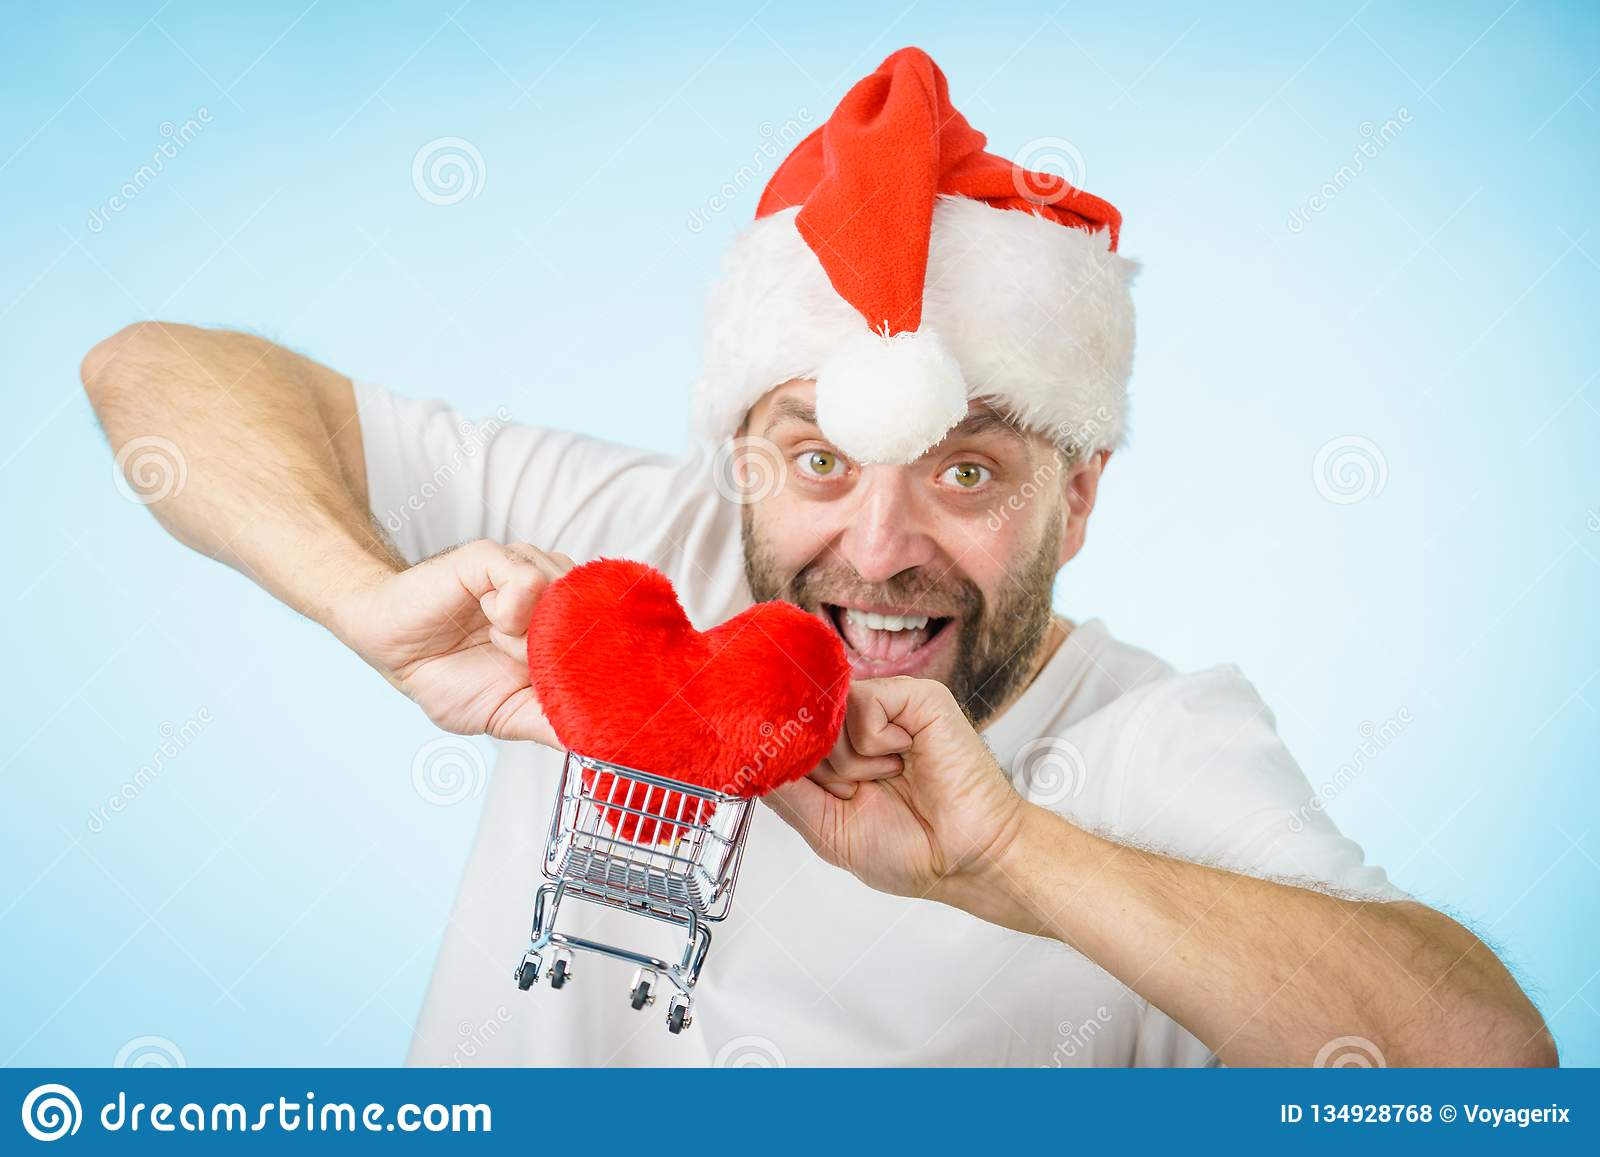 Man In Santa Hat Holds Shopping Cart With Heart Stock Photo - Image ... b51c8277319